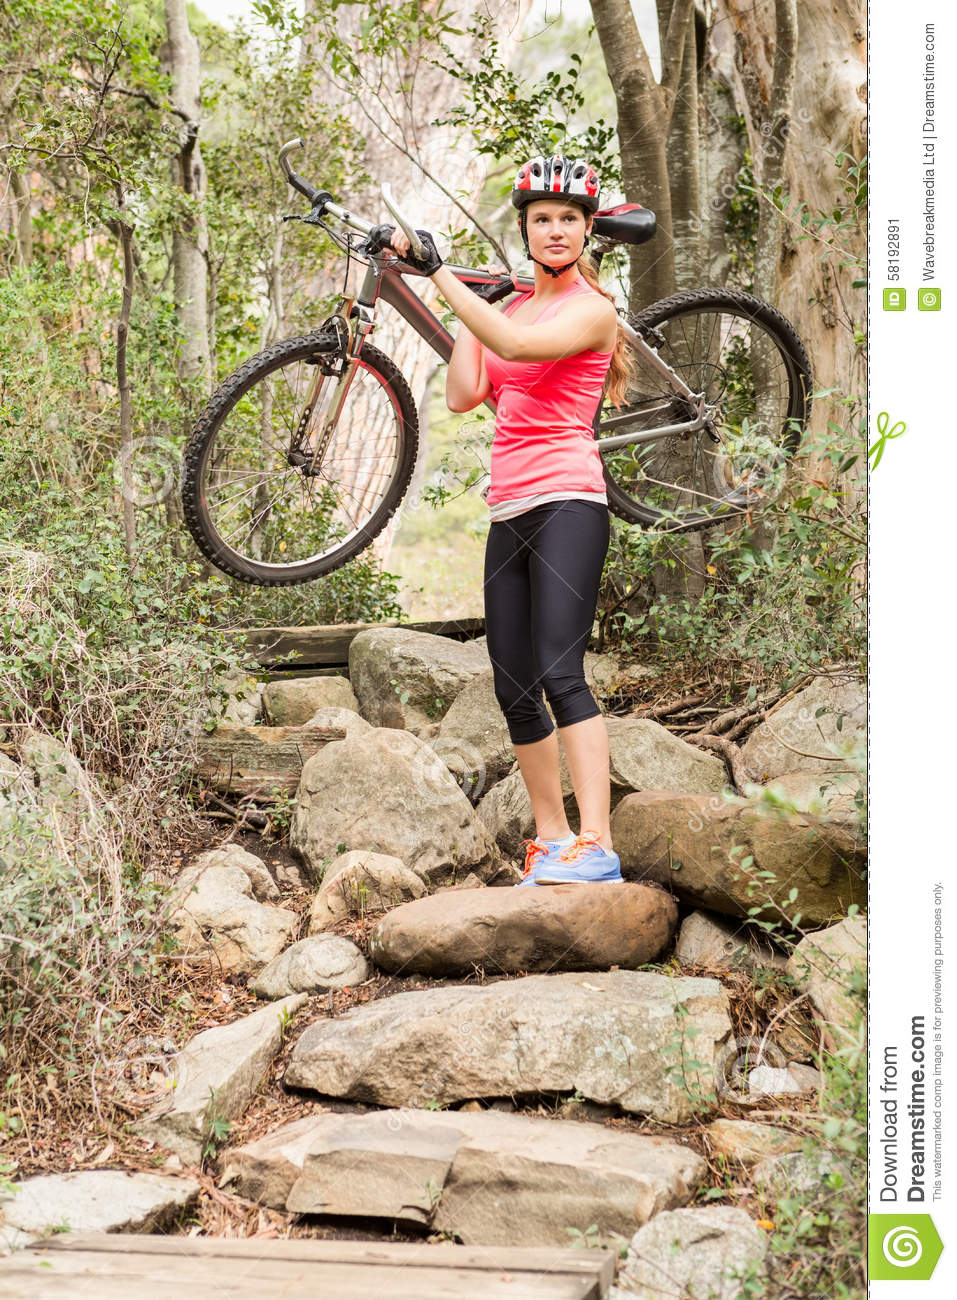 Blonde athlete carrying her mountain bike over rocks